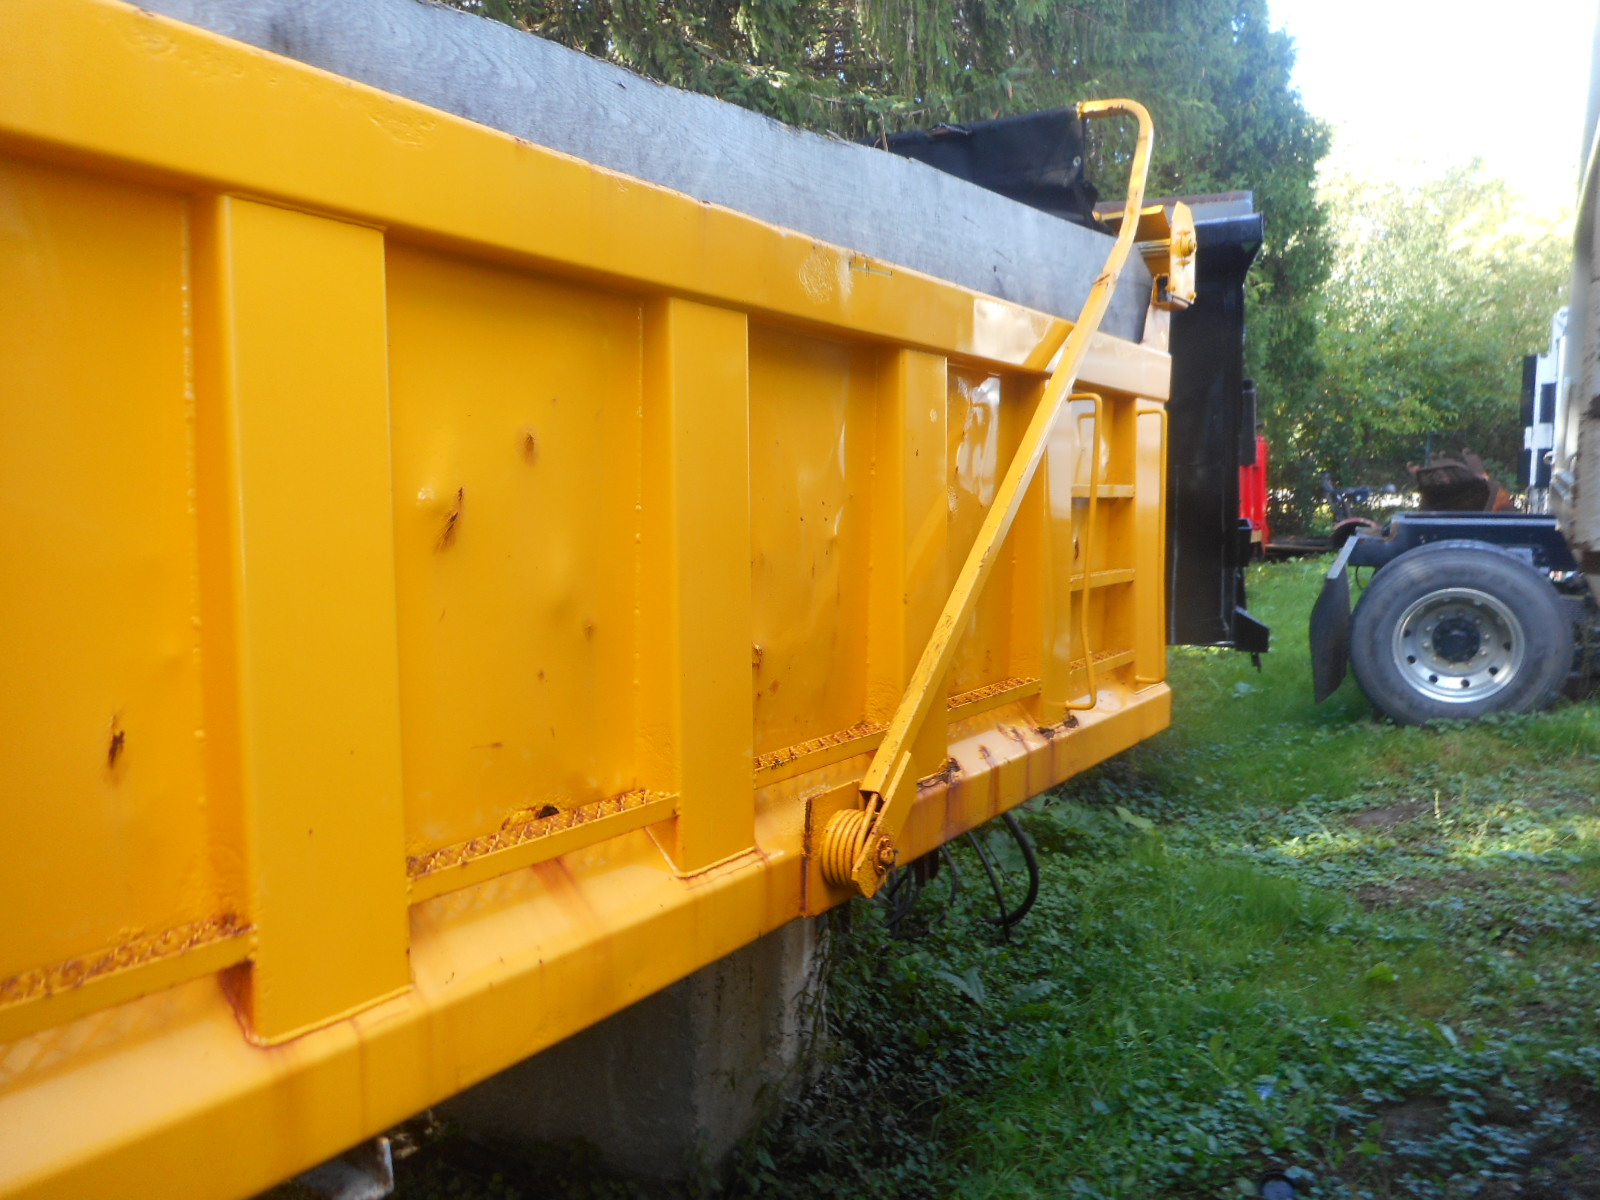 2006 Heil 12ft. Gravel Box and Hoist- Stock #: 8591